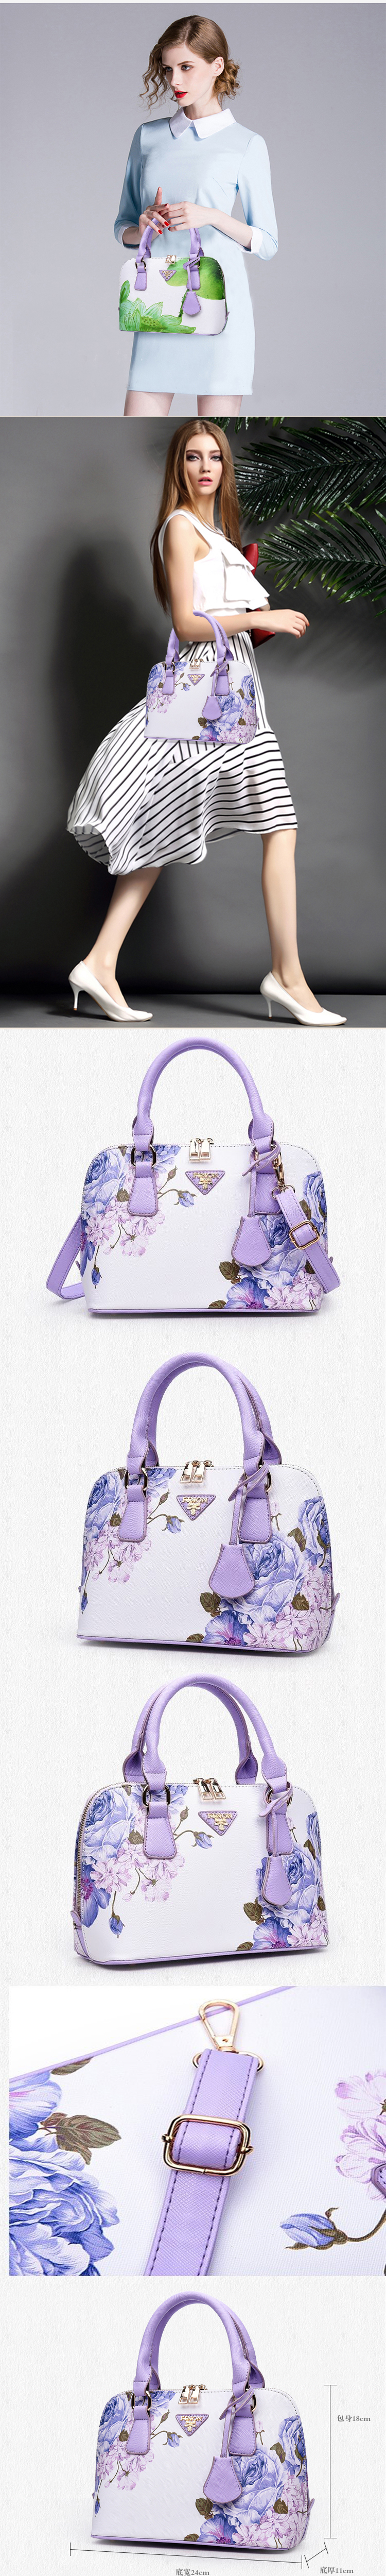 2019  Printed shell  made in china luxury bags women handbags